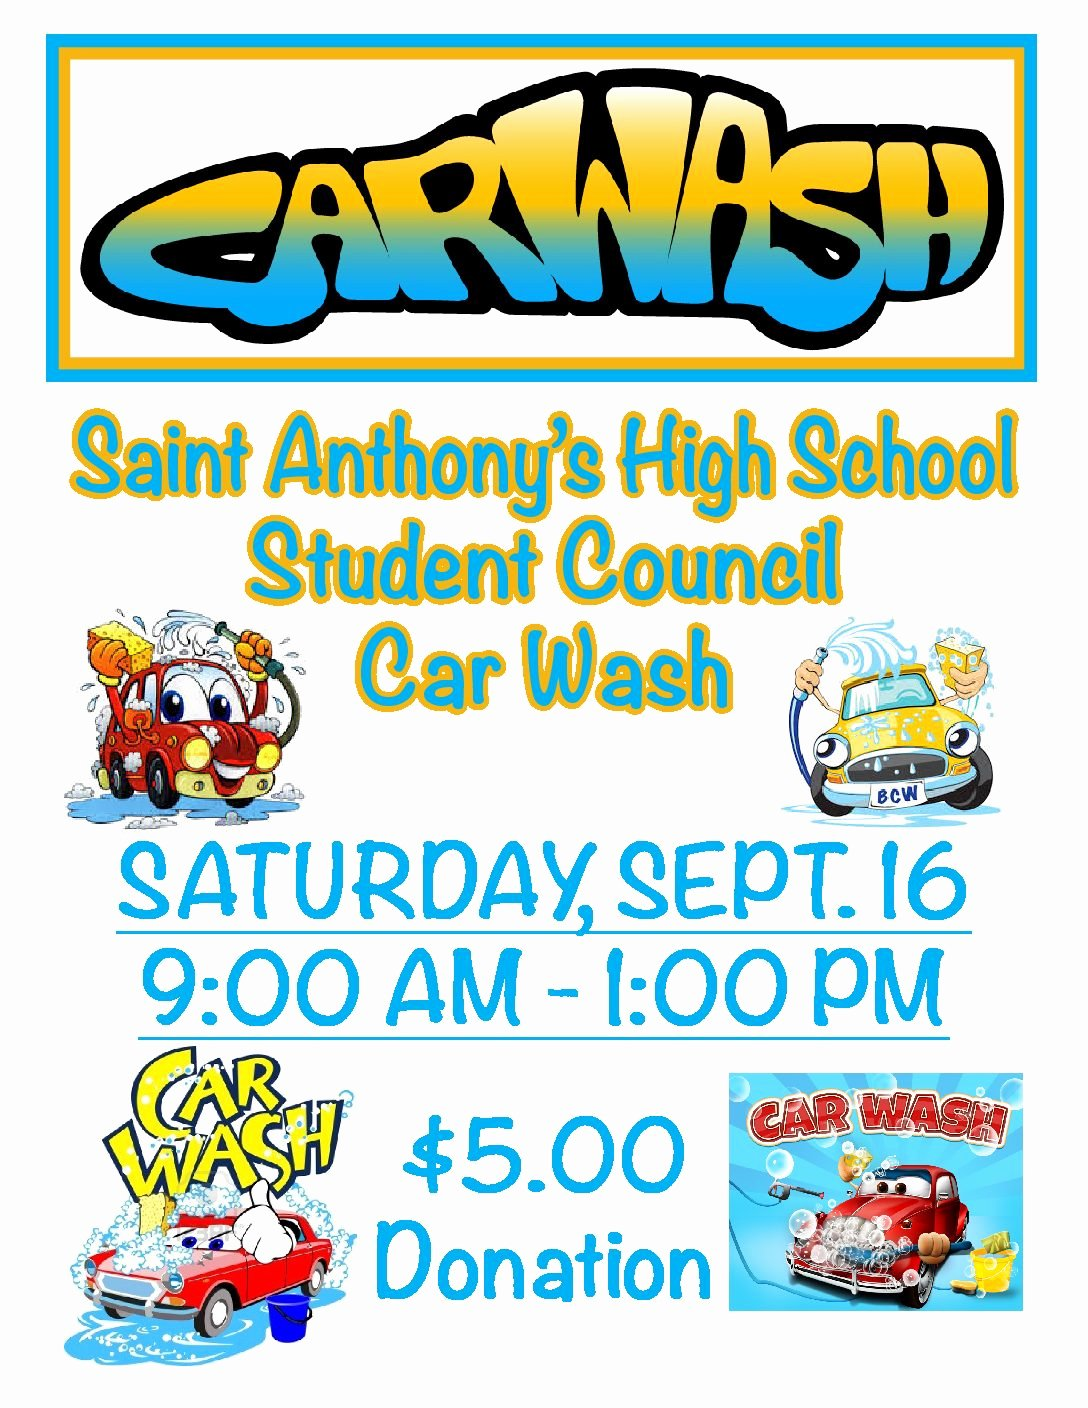 Car Wash Fundraiser Flyer Template Elegant Wel E to Saint Anthony S High School south Hungtington